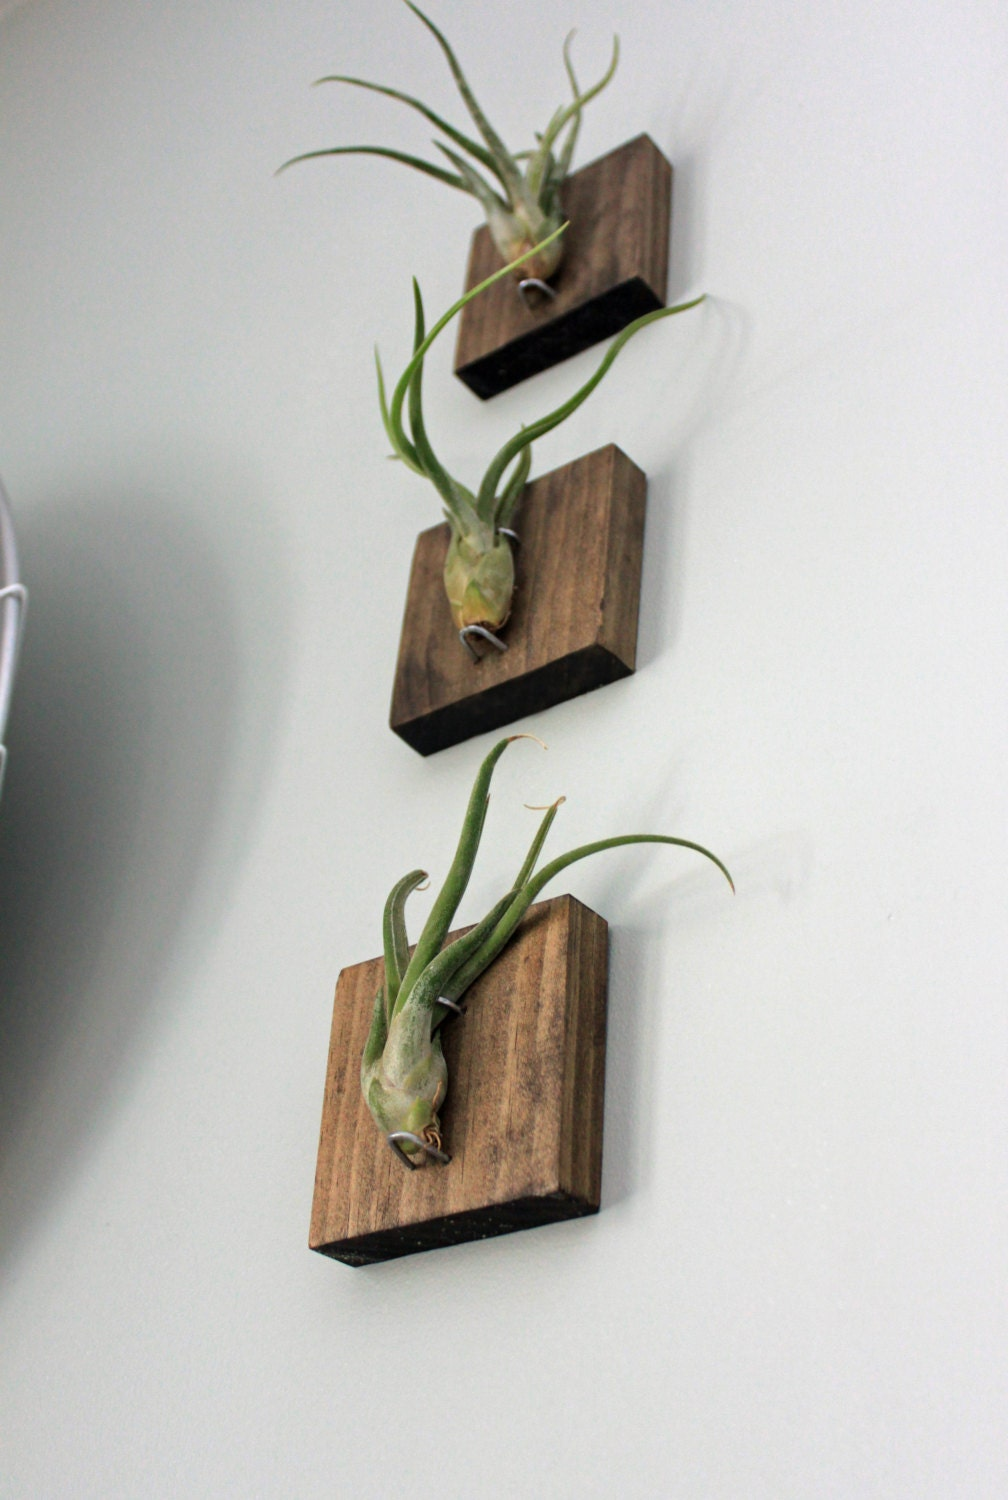 Mounted Air Plants Medusa 39 S Head Living Art By